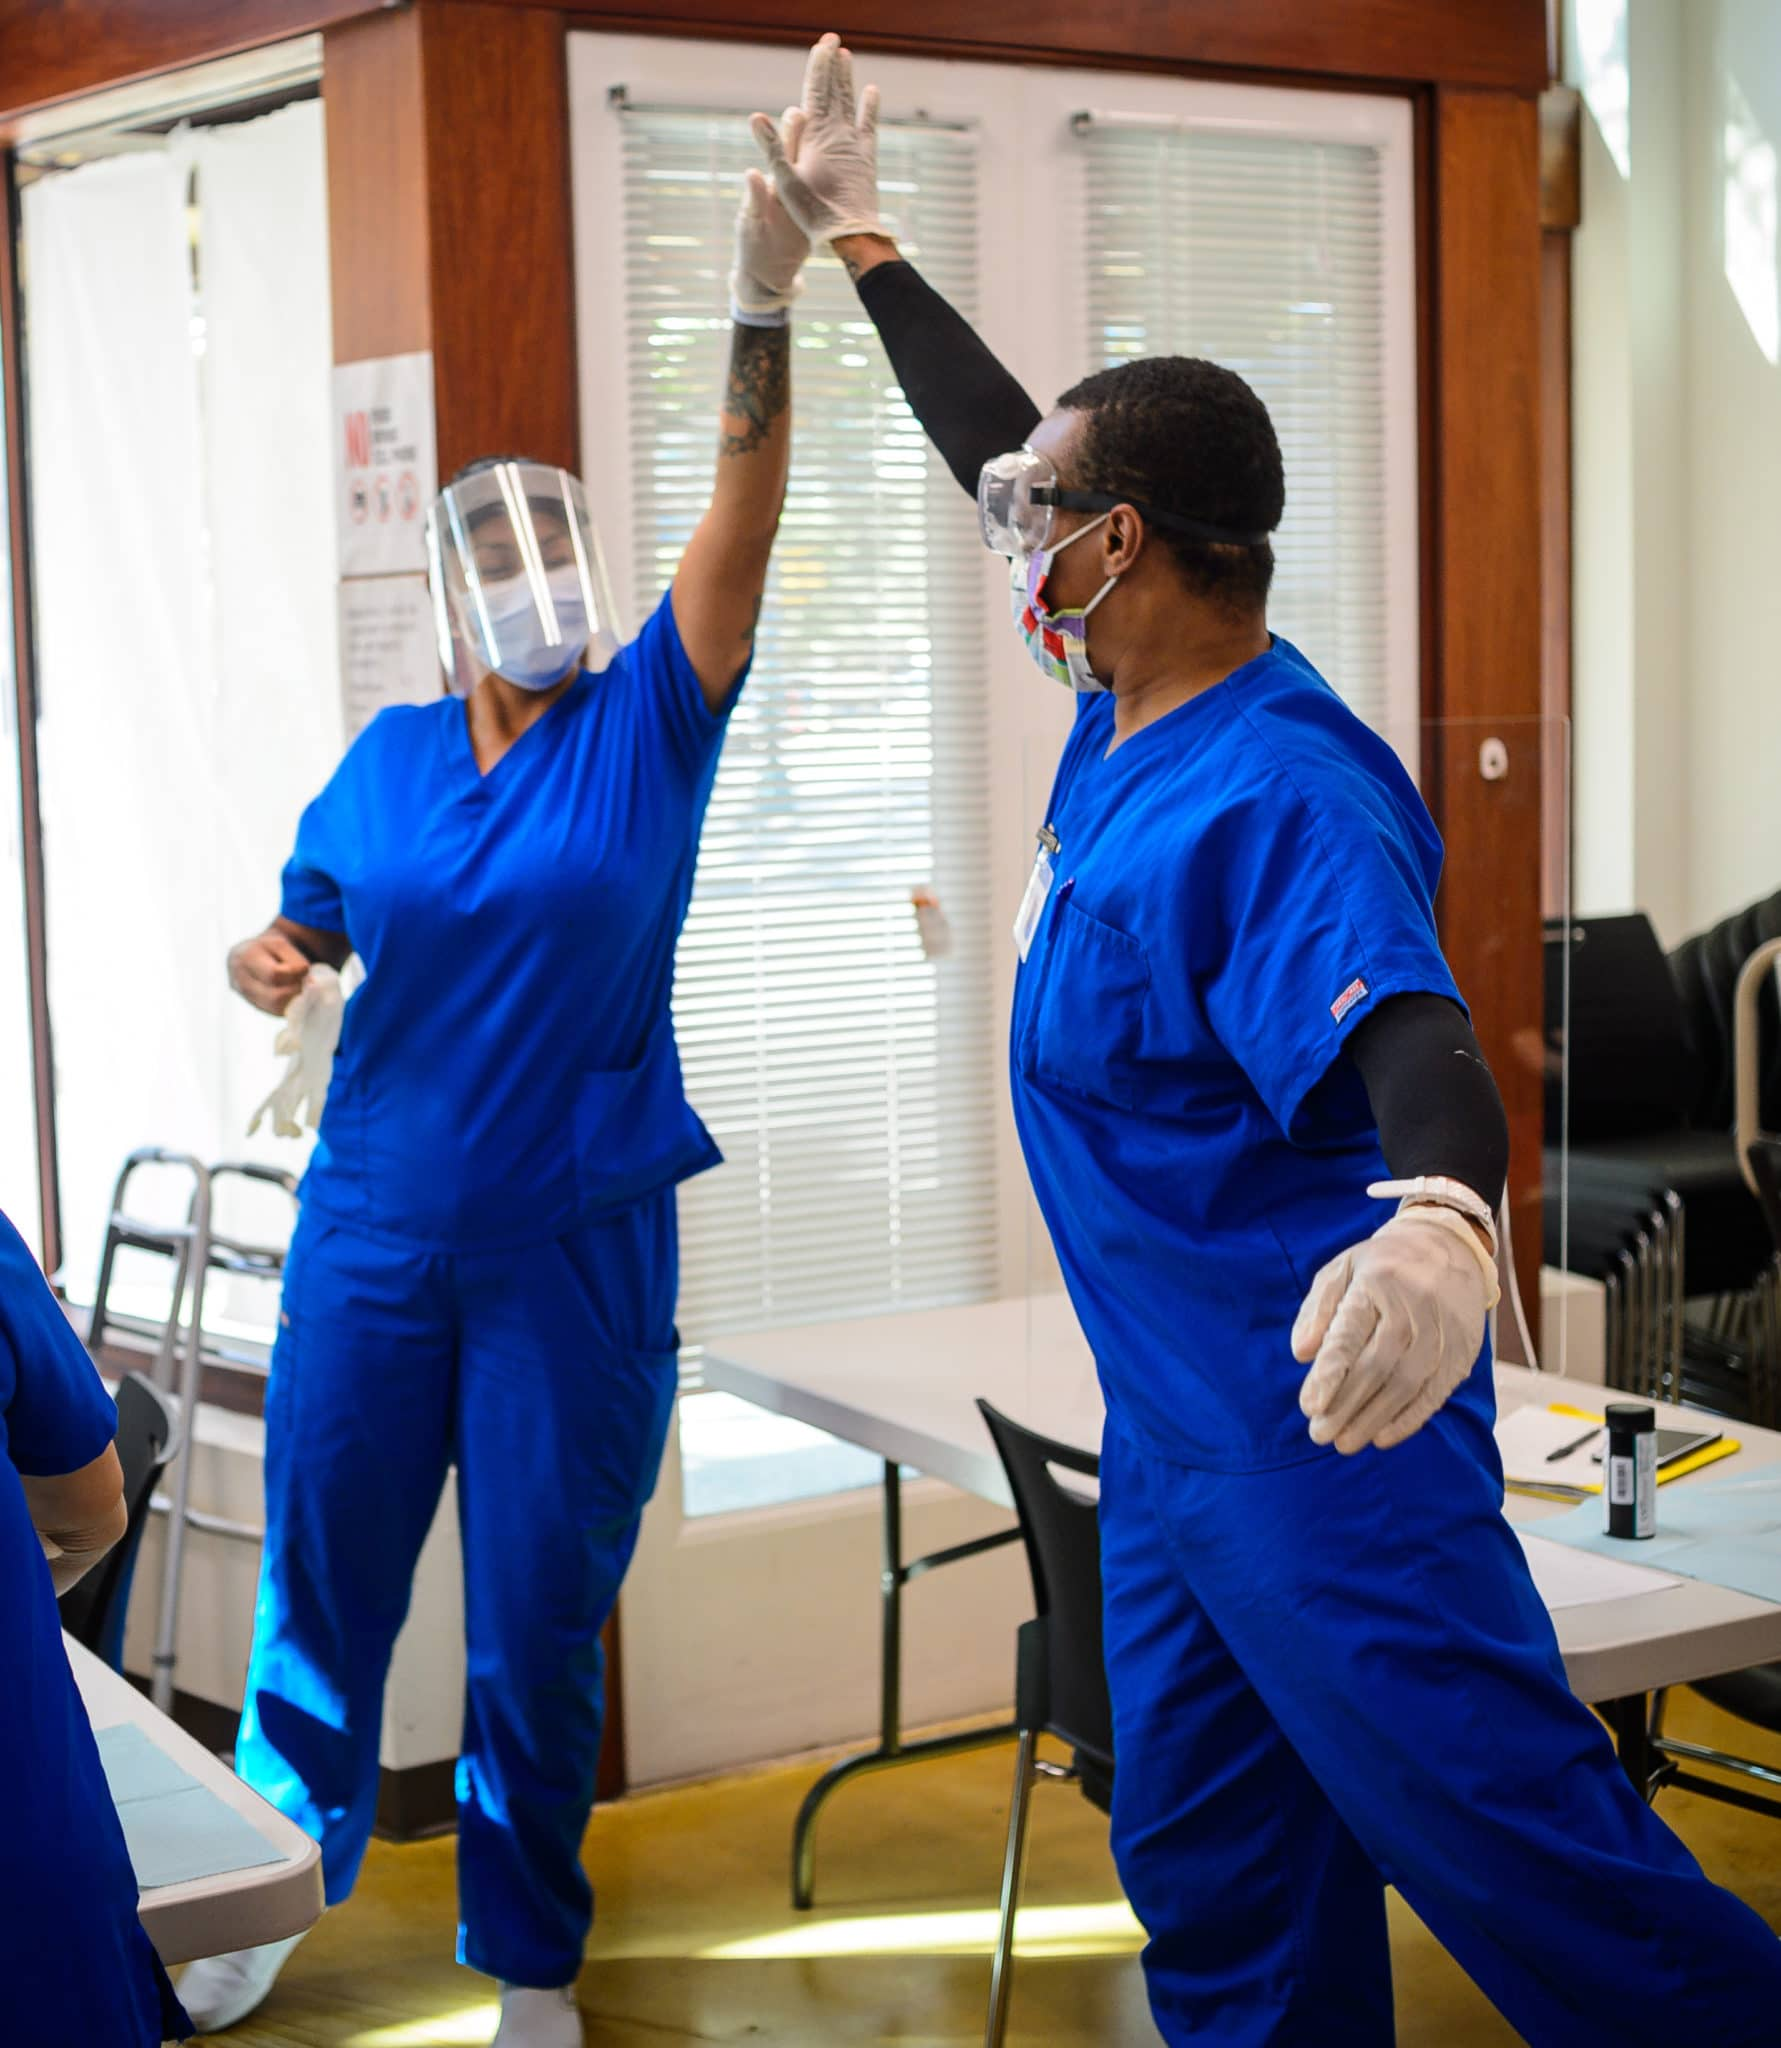 Medical Assistant students Amanda DeLaO, left, and Terence Flowers high-five at Goodwill's Good Careers Academy